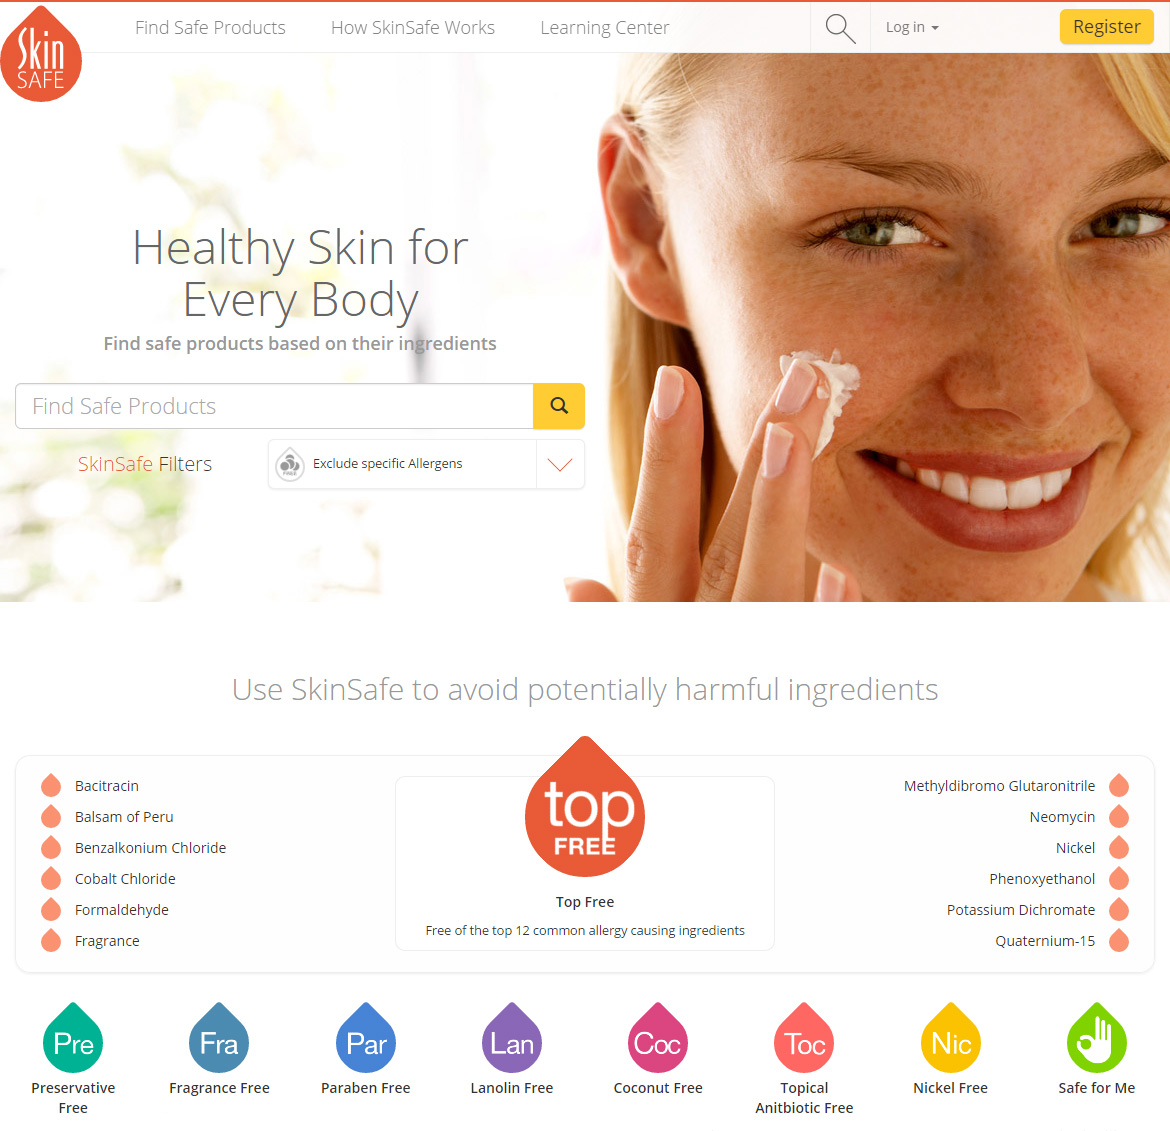 New SkinSAFE App from Dr. James Yiannias and EmpowHer Coming Soon